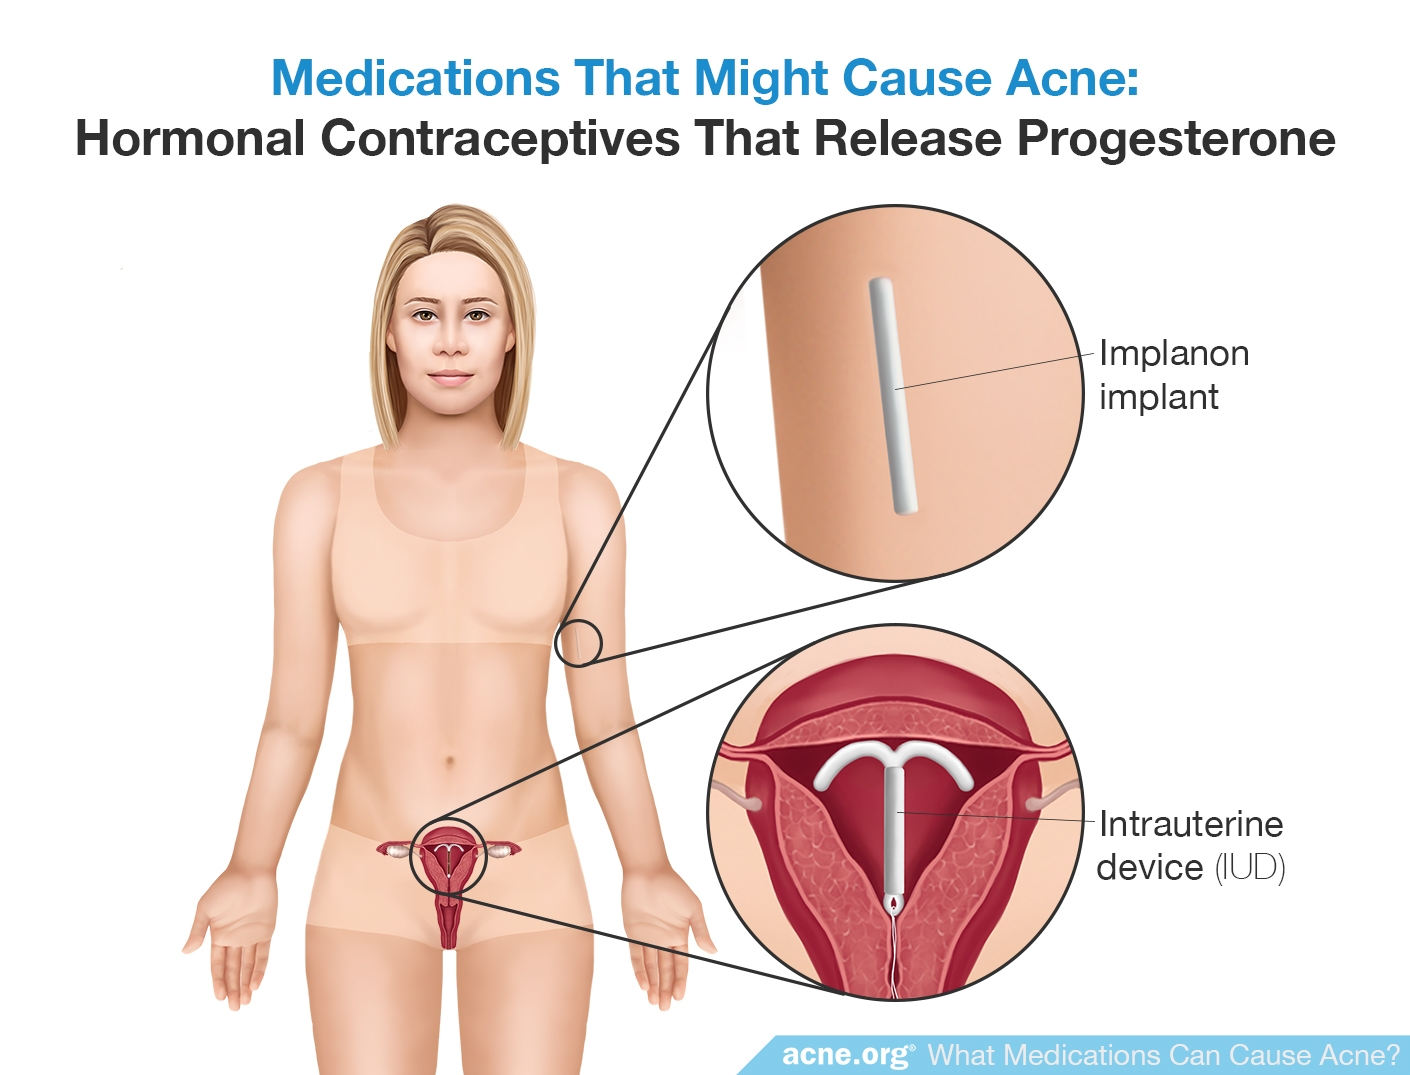 Hormonal Contraceptives that Release Progesterone - Might Cause Acne